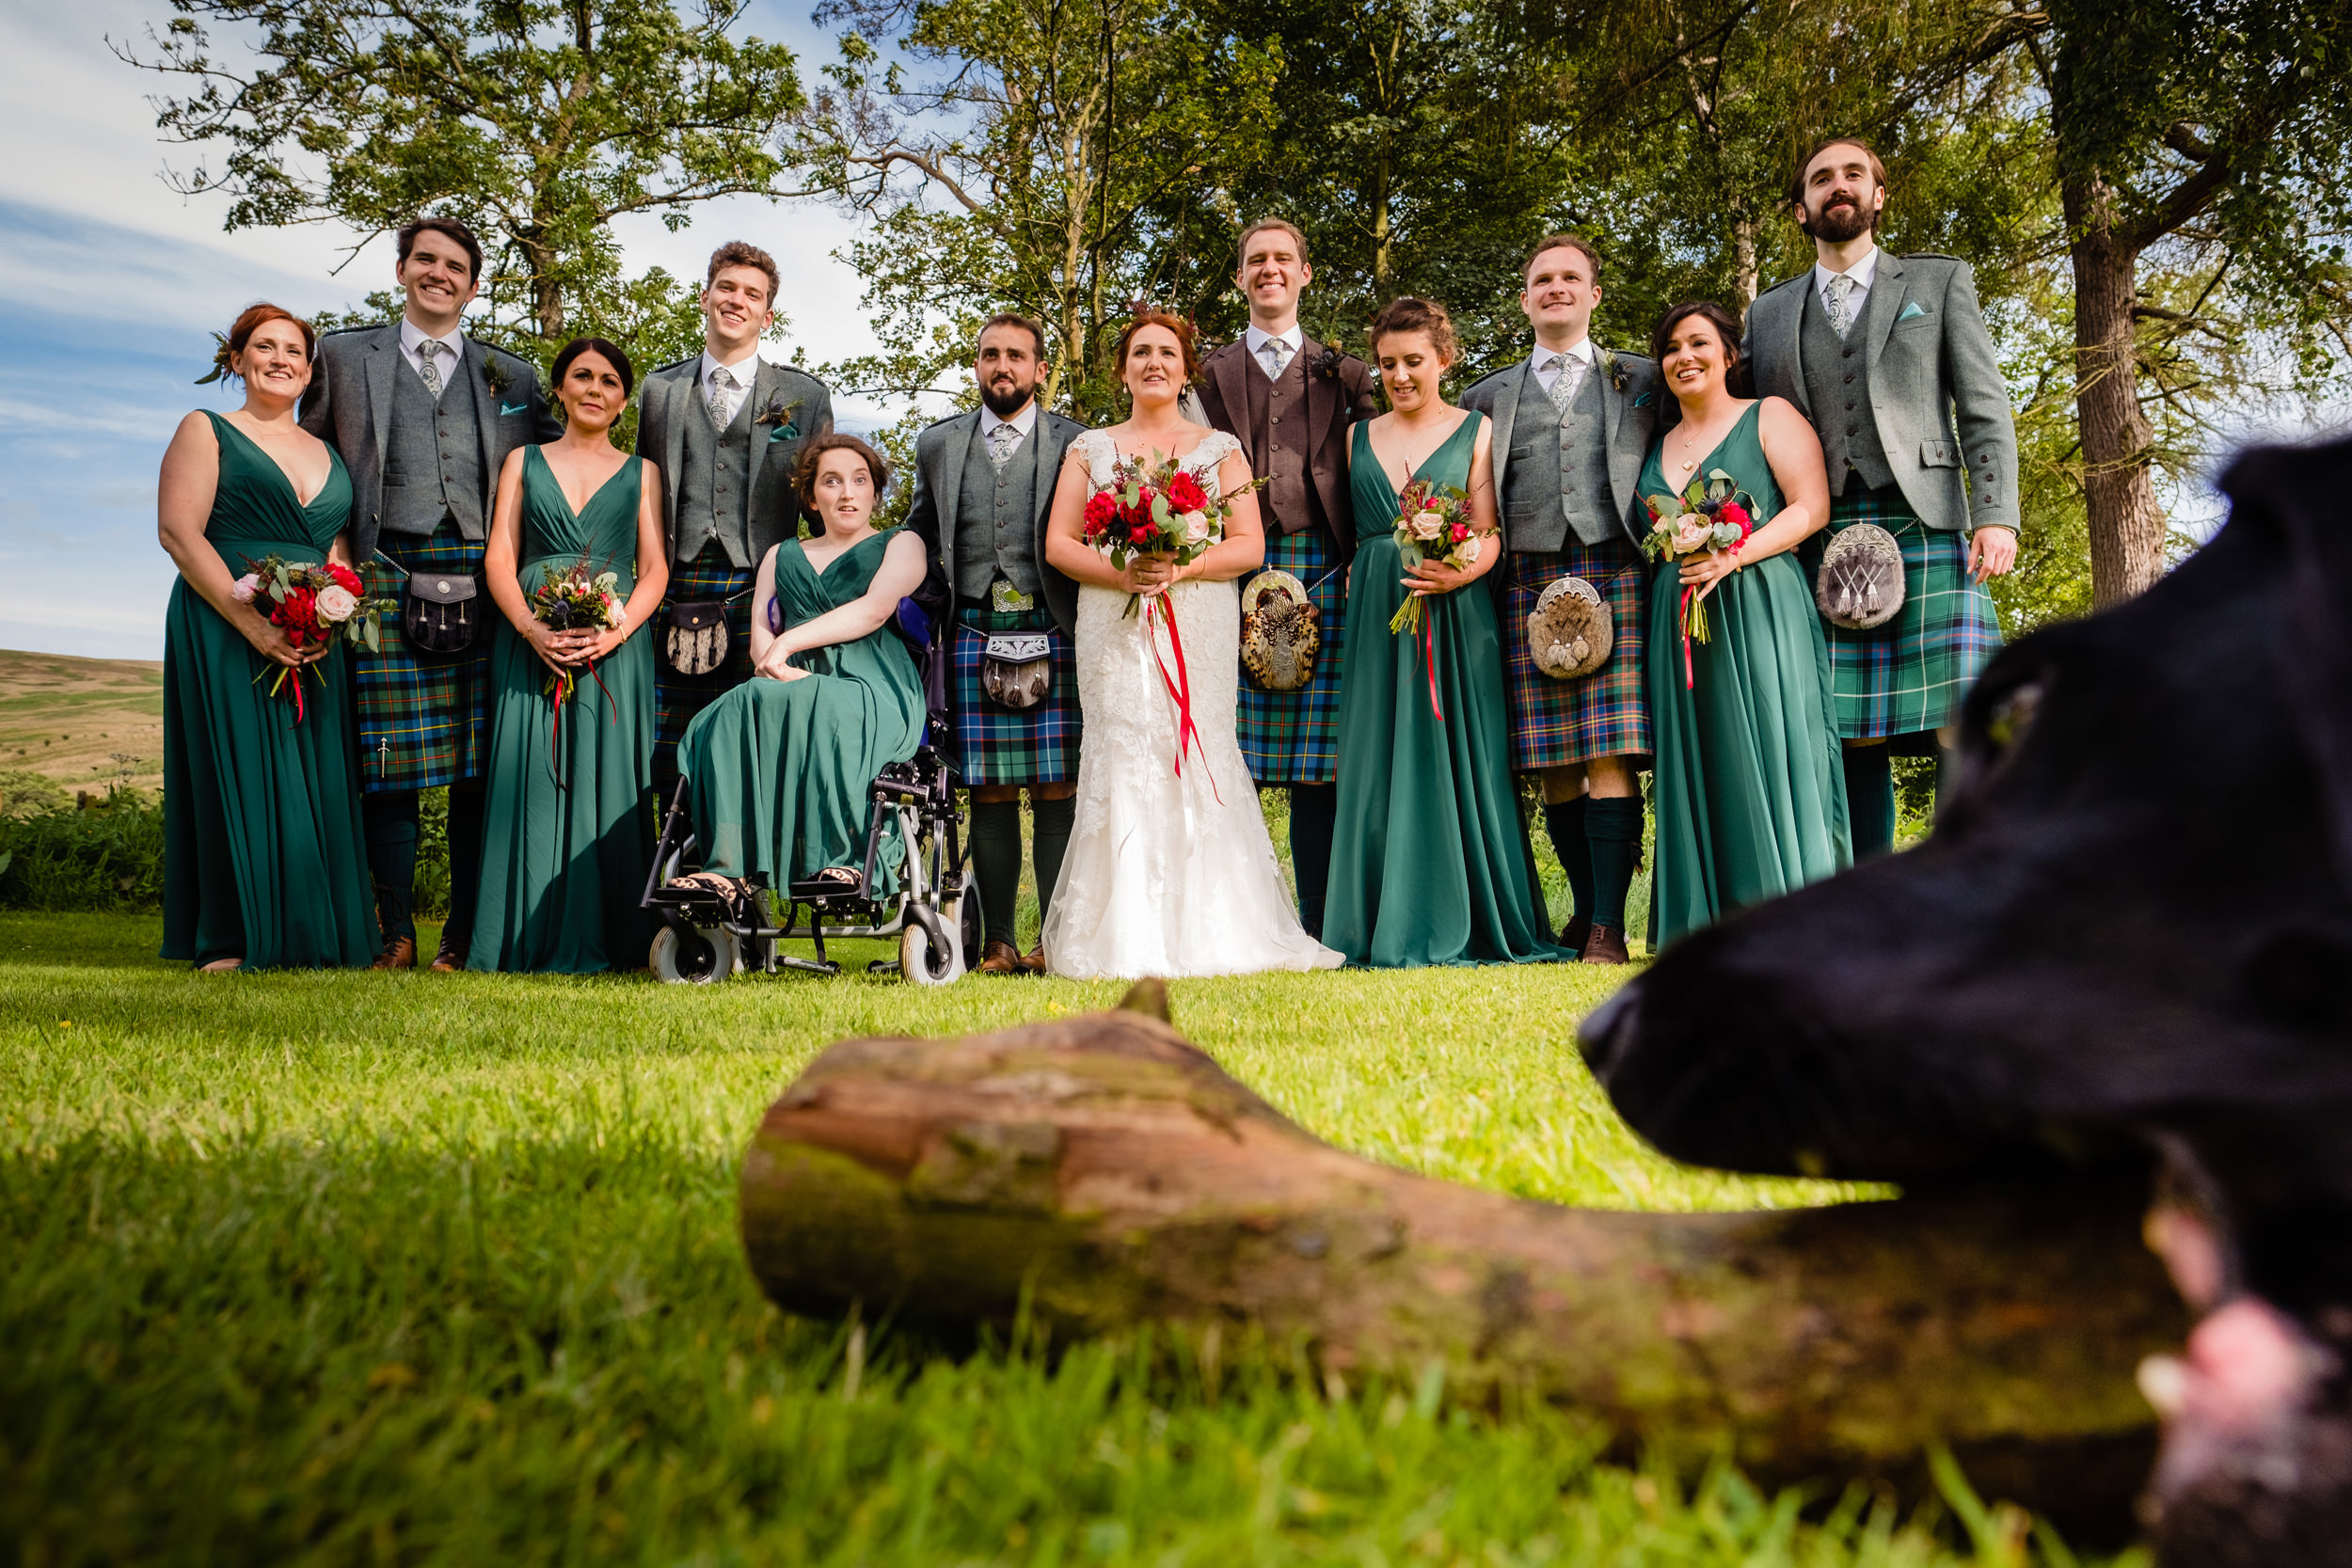 dog in front of group shot. scotland wedding photography by emma and rich.